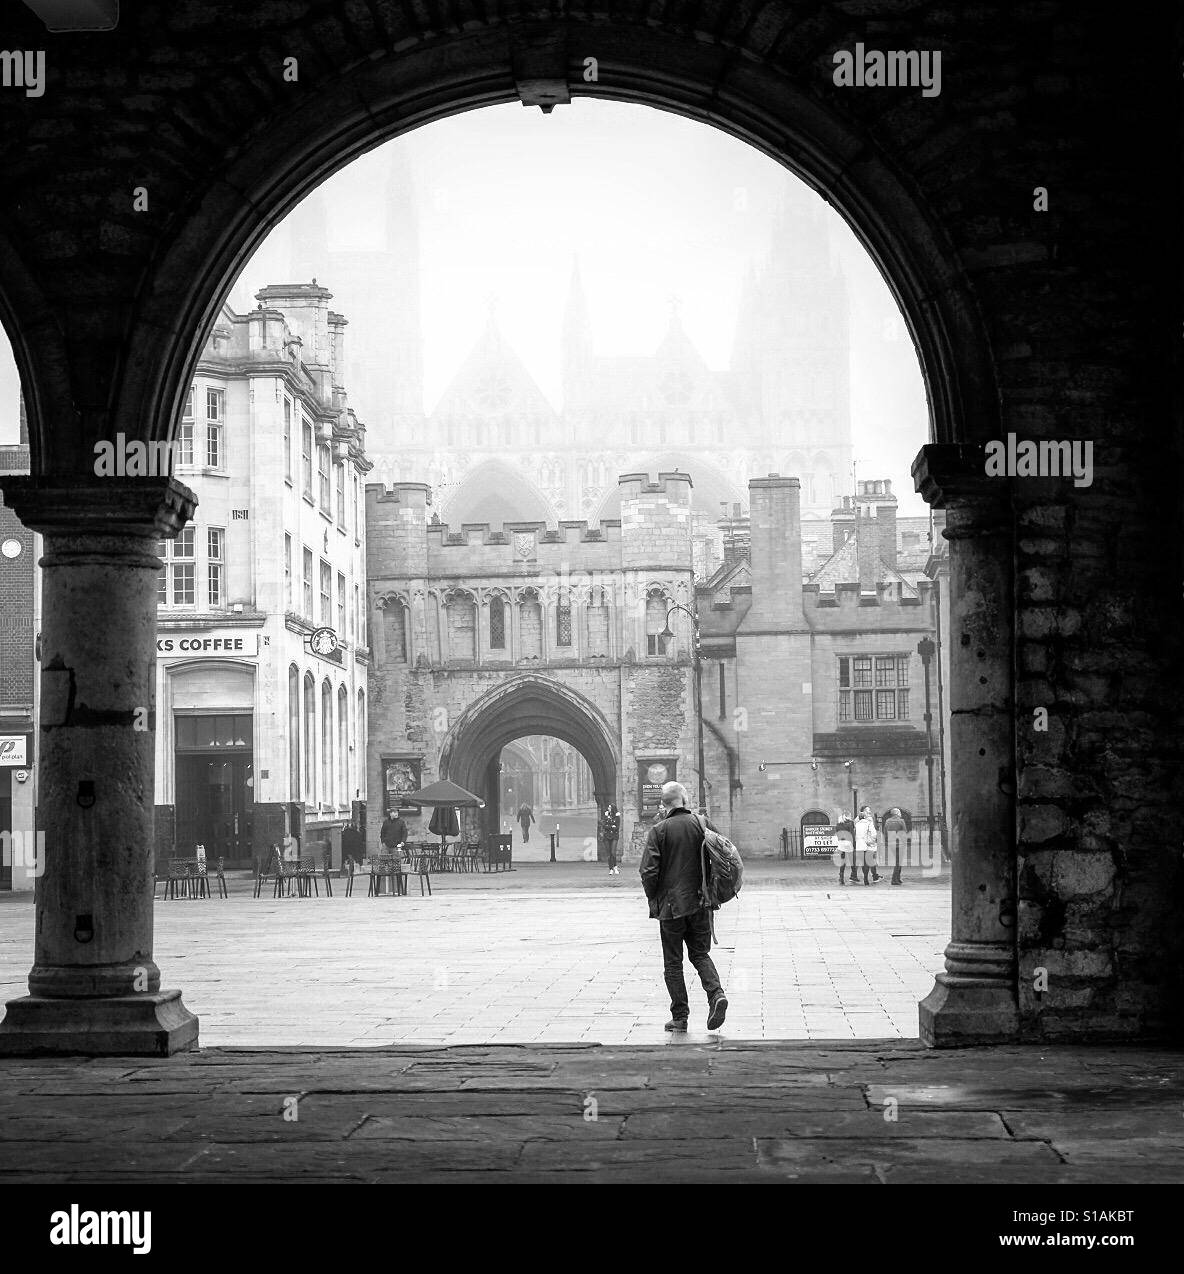 Cathedral Square, Peterborough, Cambridgeshire. England - Stock Image